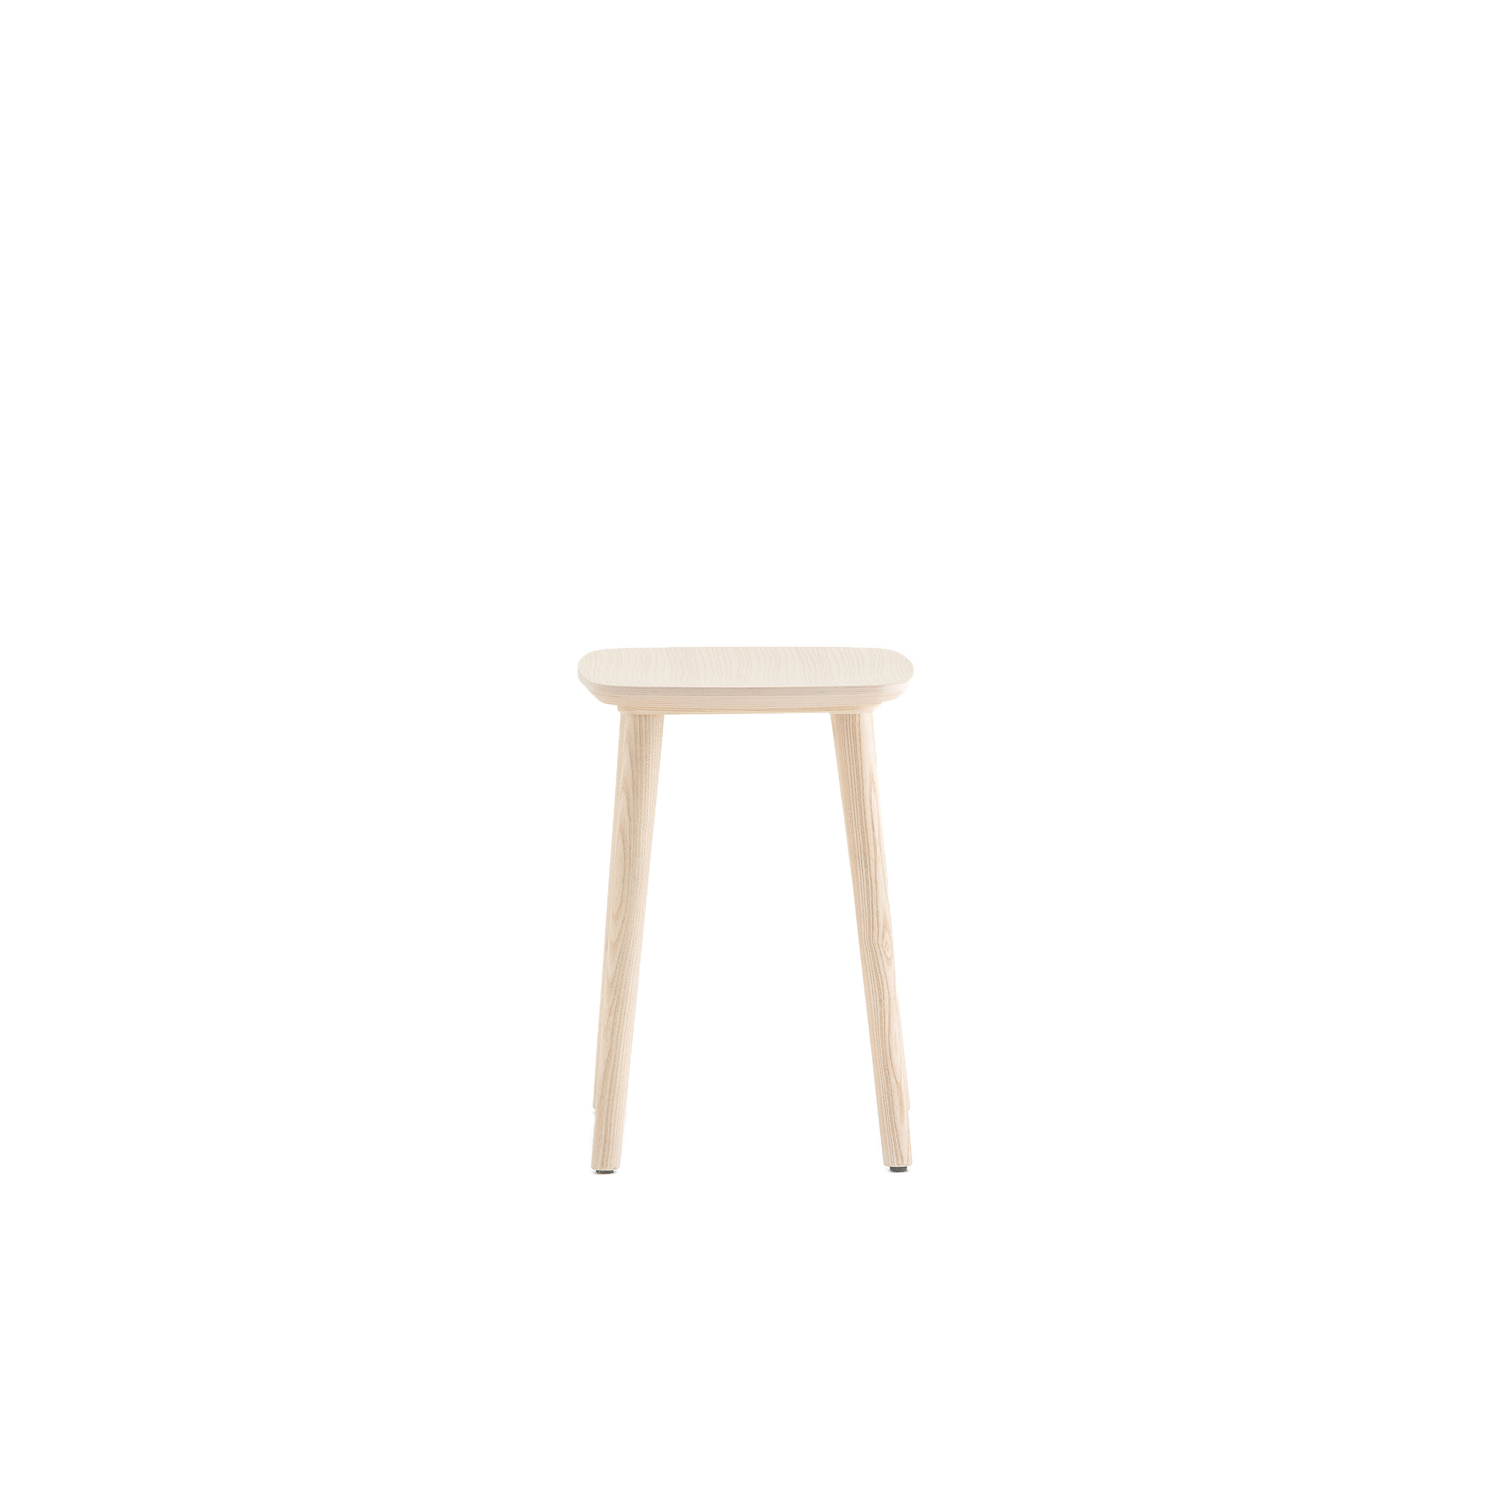 Babila Stool Short - Babila collection is able to move along tradition and innovation with great agility. The strenght of this collection is its simplicity and directness, to recall a timeless shape. Ash wood barstool with tapered legs that perfectly join the plywood seat. Height 460mm.